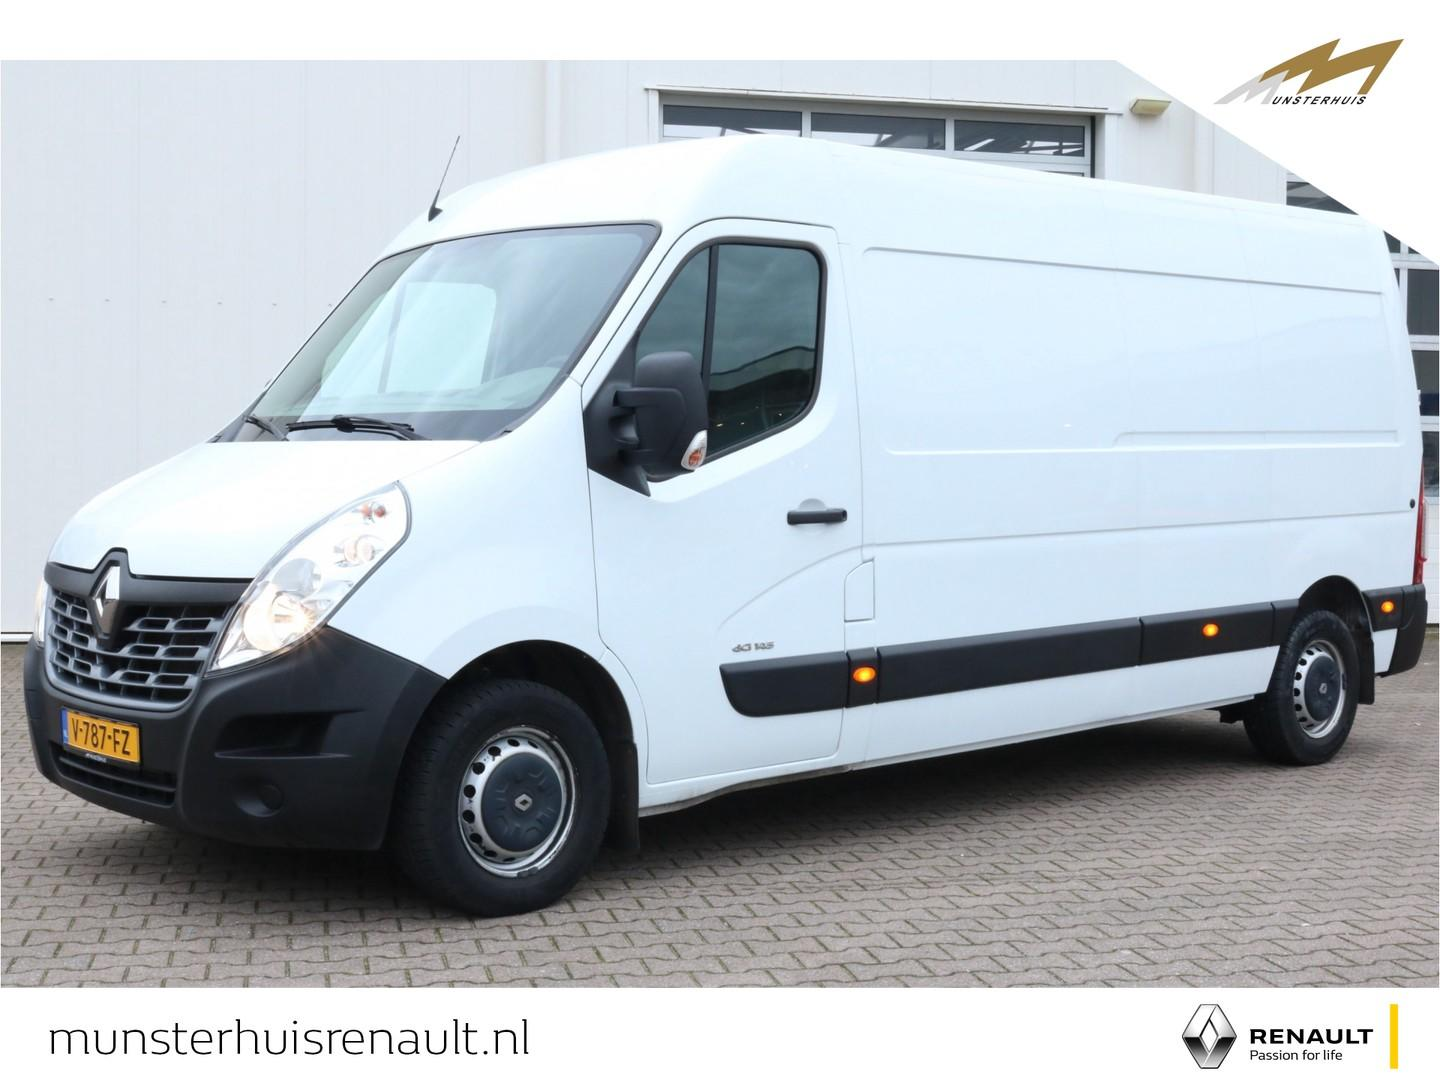 Renault Master T35 2.3 dci l3h2 energy - navigatie - cruise control - airco - bluetooth -